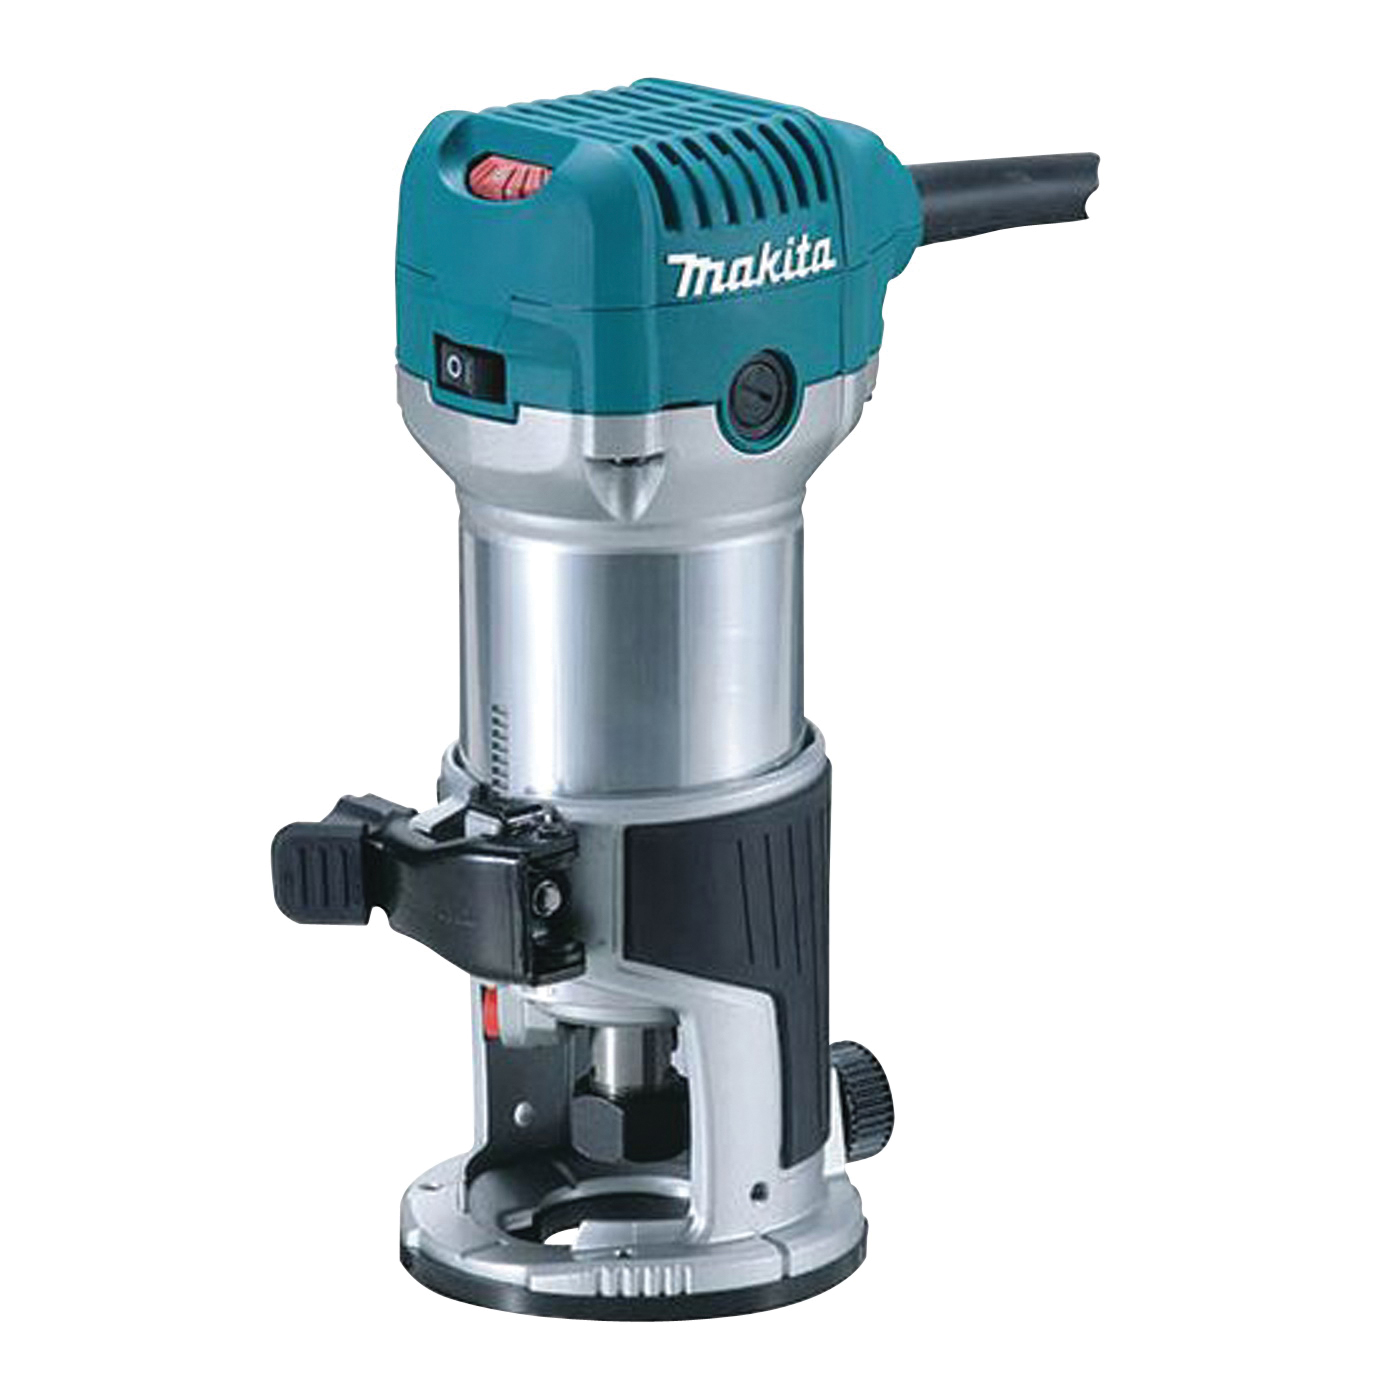 Picture of Makita RT0701C Compact Router, 6.5 A, 10,000 to 30,000 rpm No Load